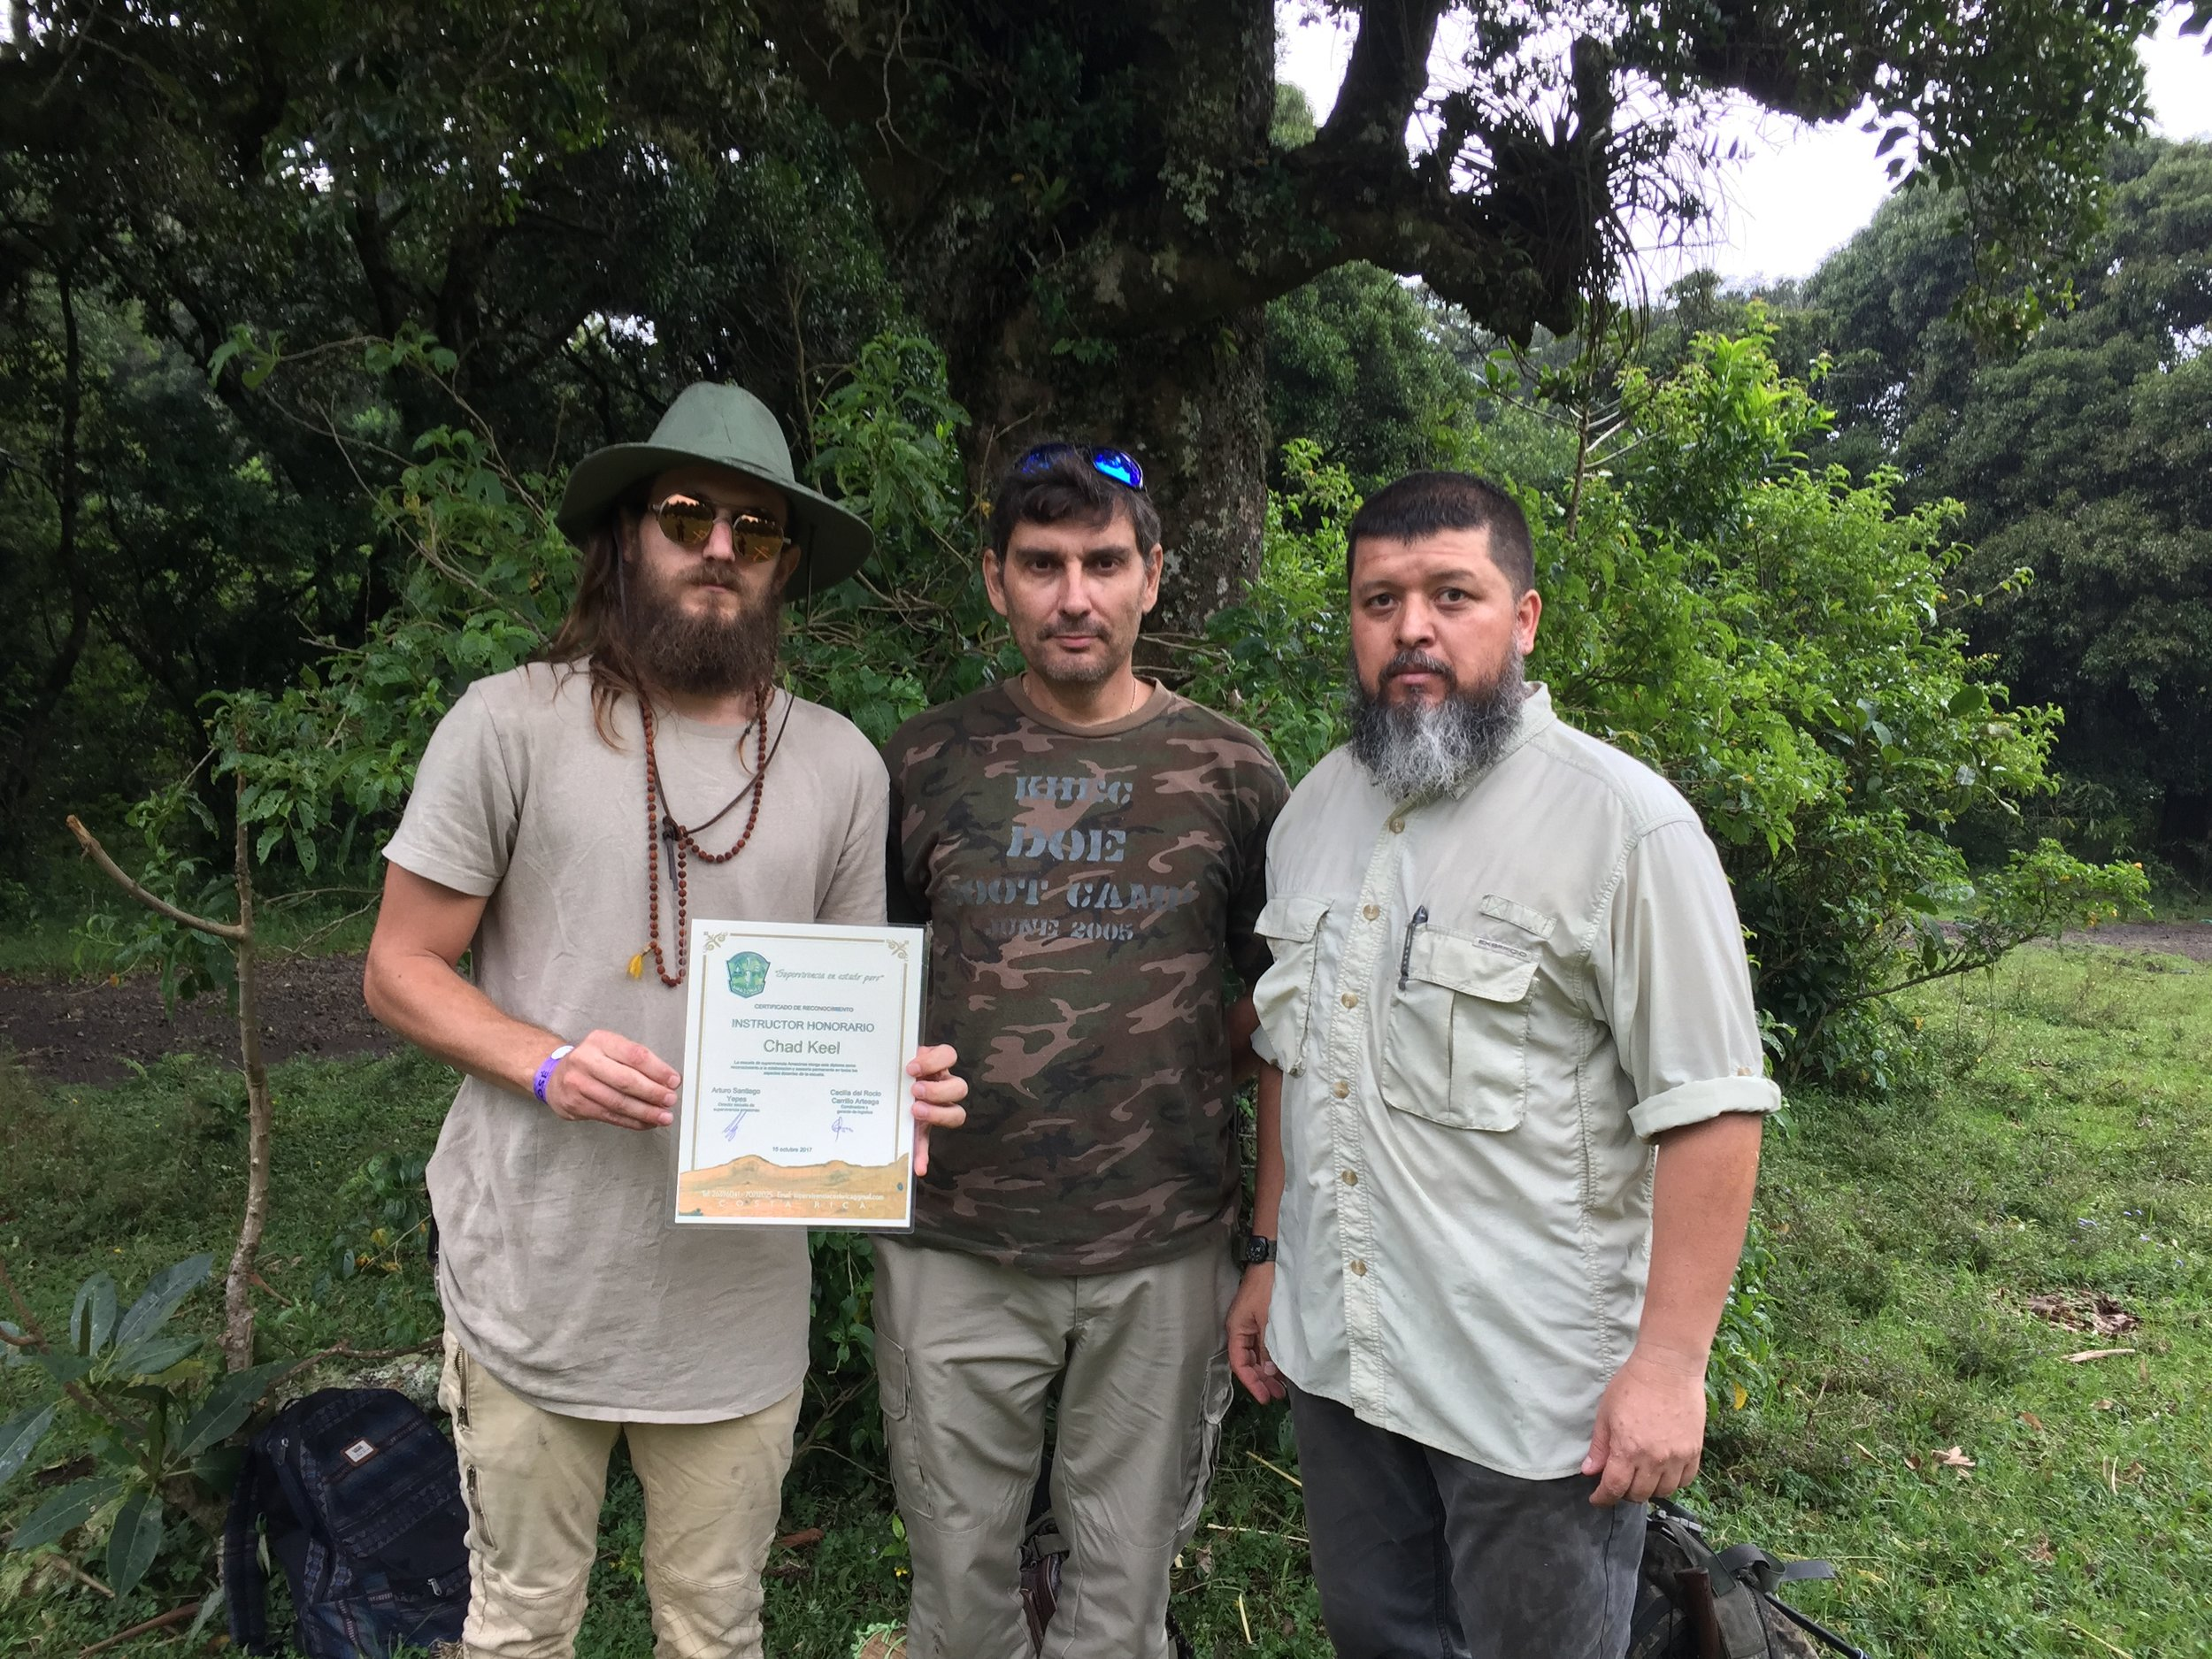 Chad Keel was made an Honorary Instructor for the Amazonas Survival School in Costa Rica in 2017.